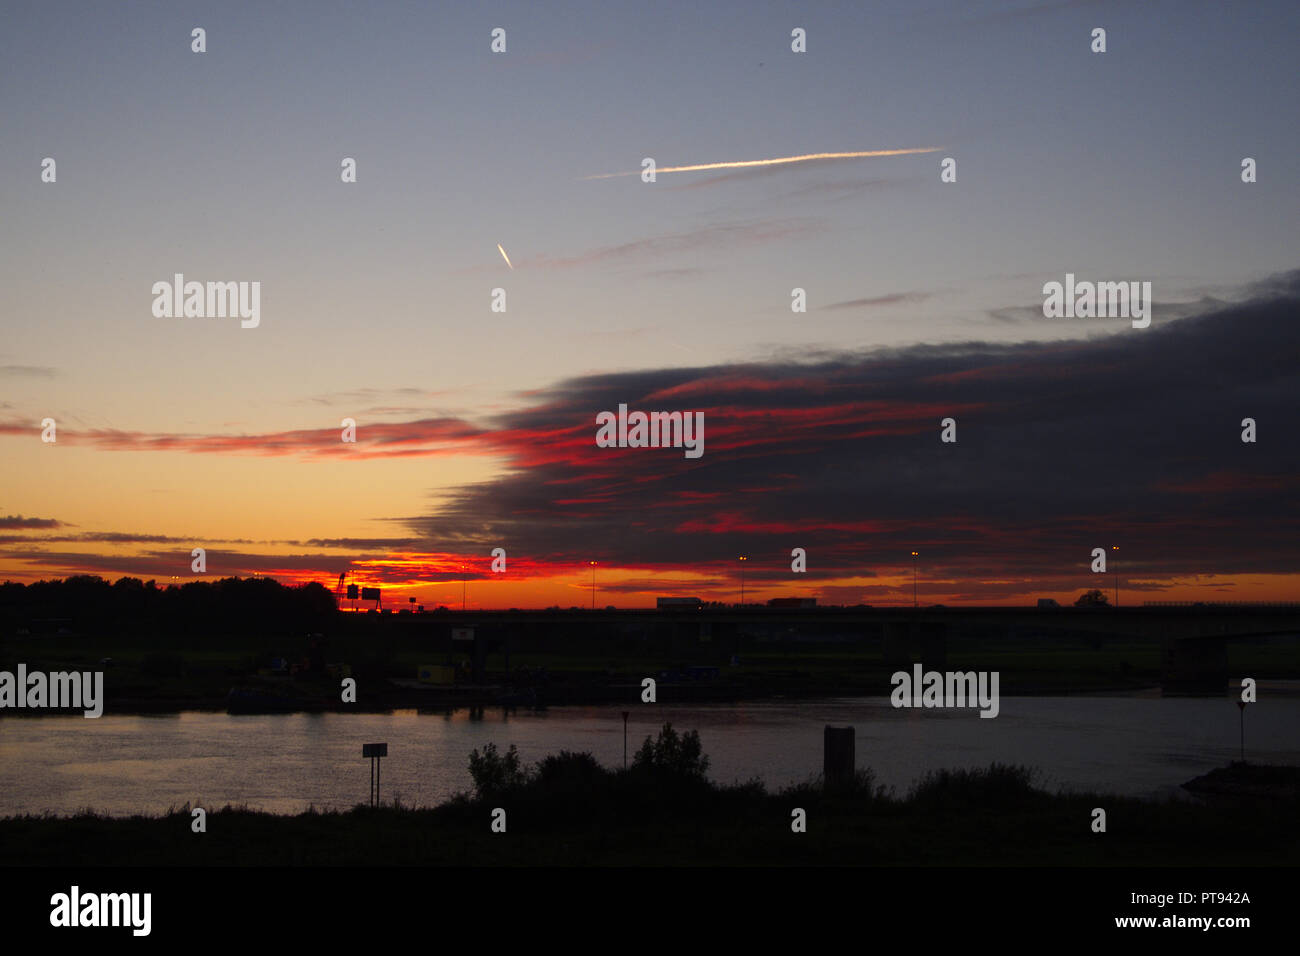 Sunset over the IJssel river near Zwolle, Netherlands - Stock Image